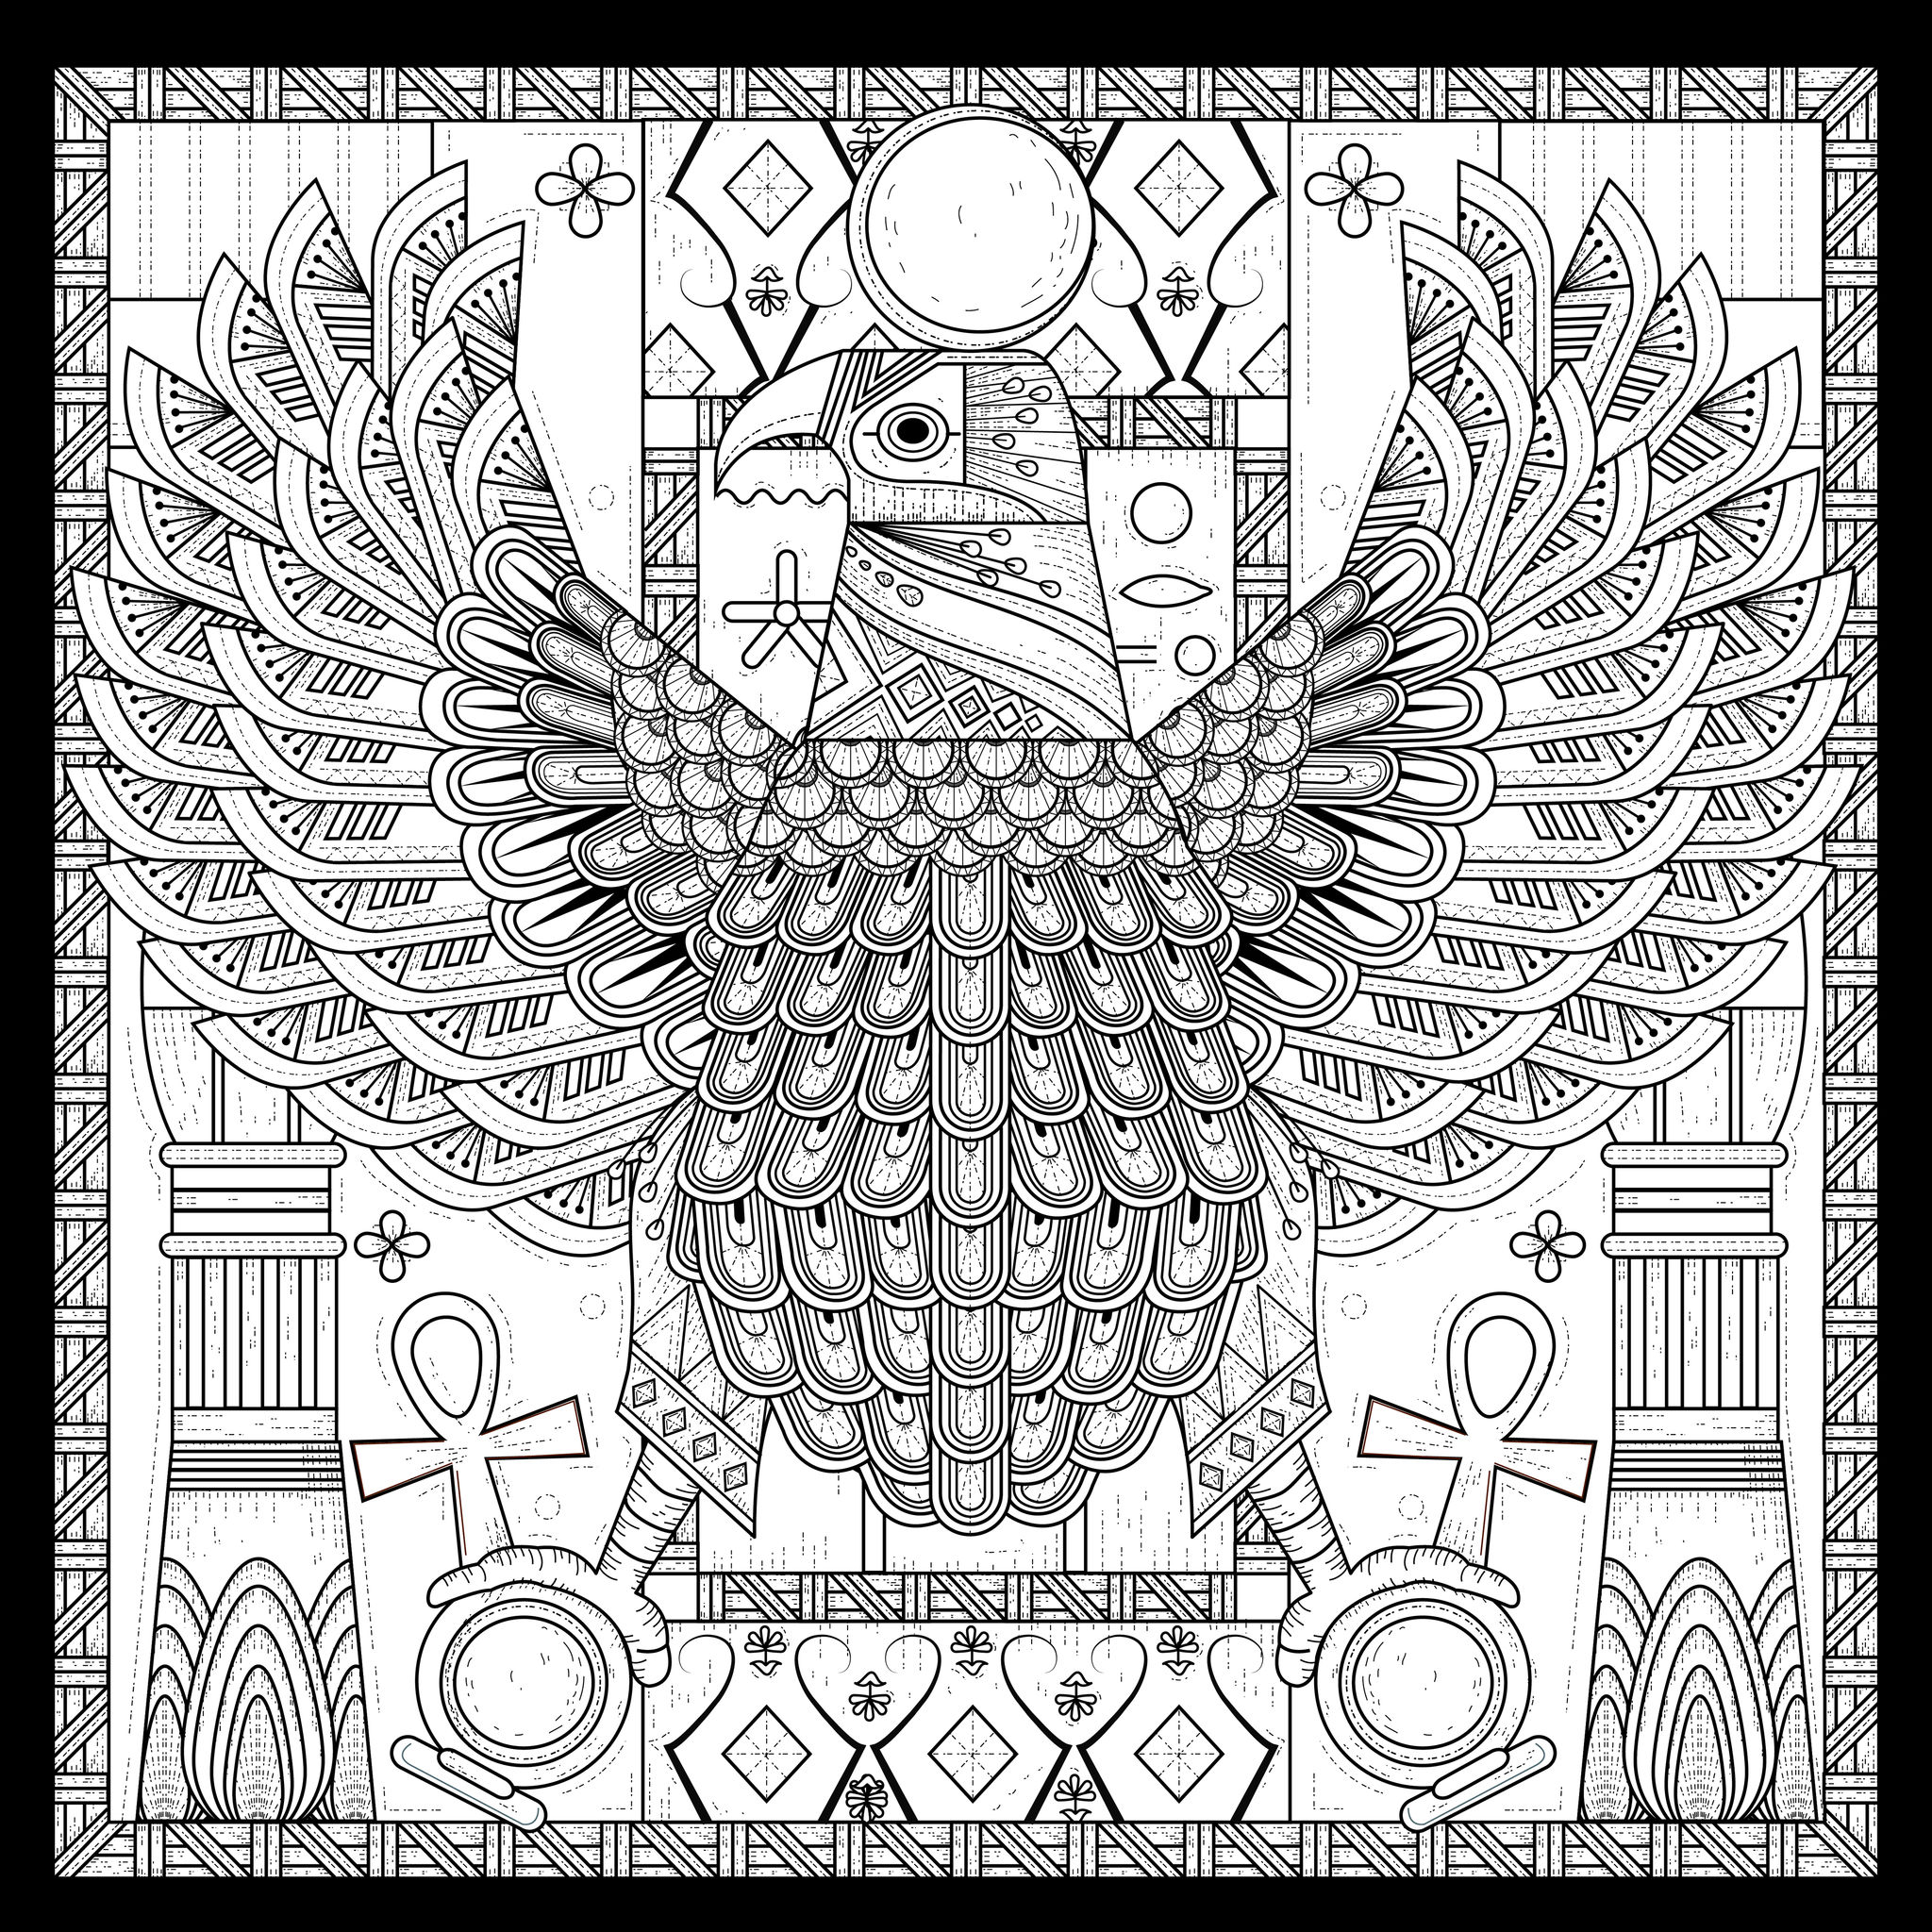 2048x2048 Egypt Eagle Egyptian Style With Symbols By Kchung Egypt